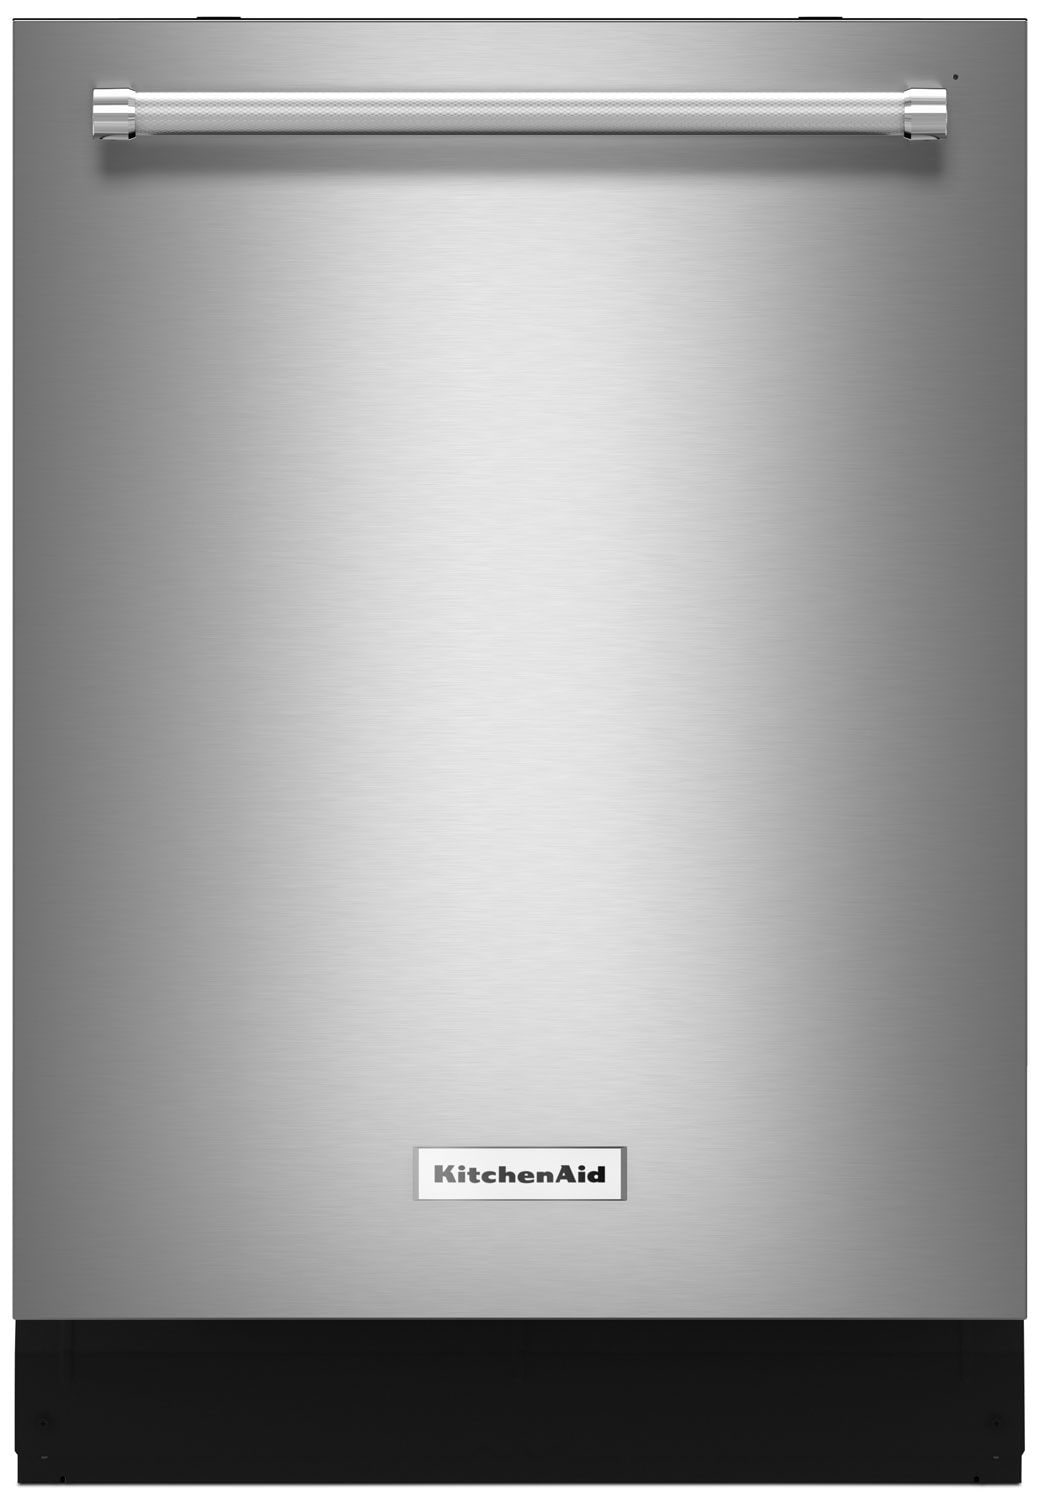 "Clean-Up - KitchenAid 24"" Dishwasher with ProScrub® System - Stainless Steel"